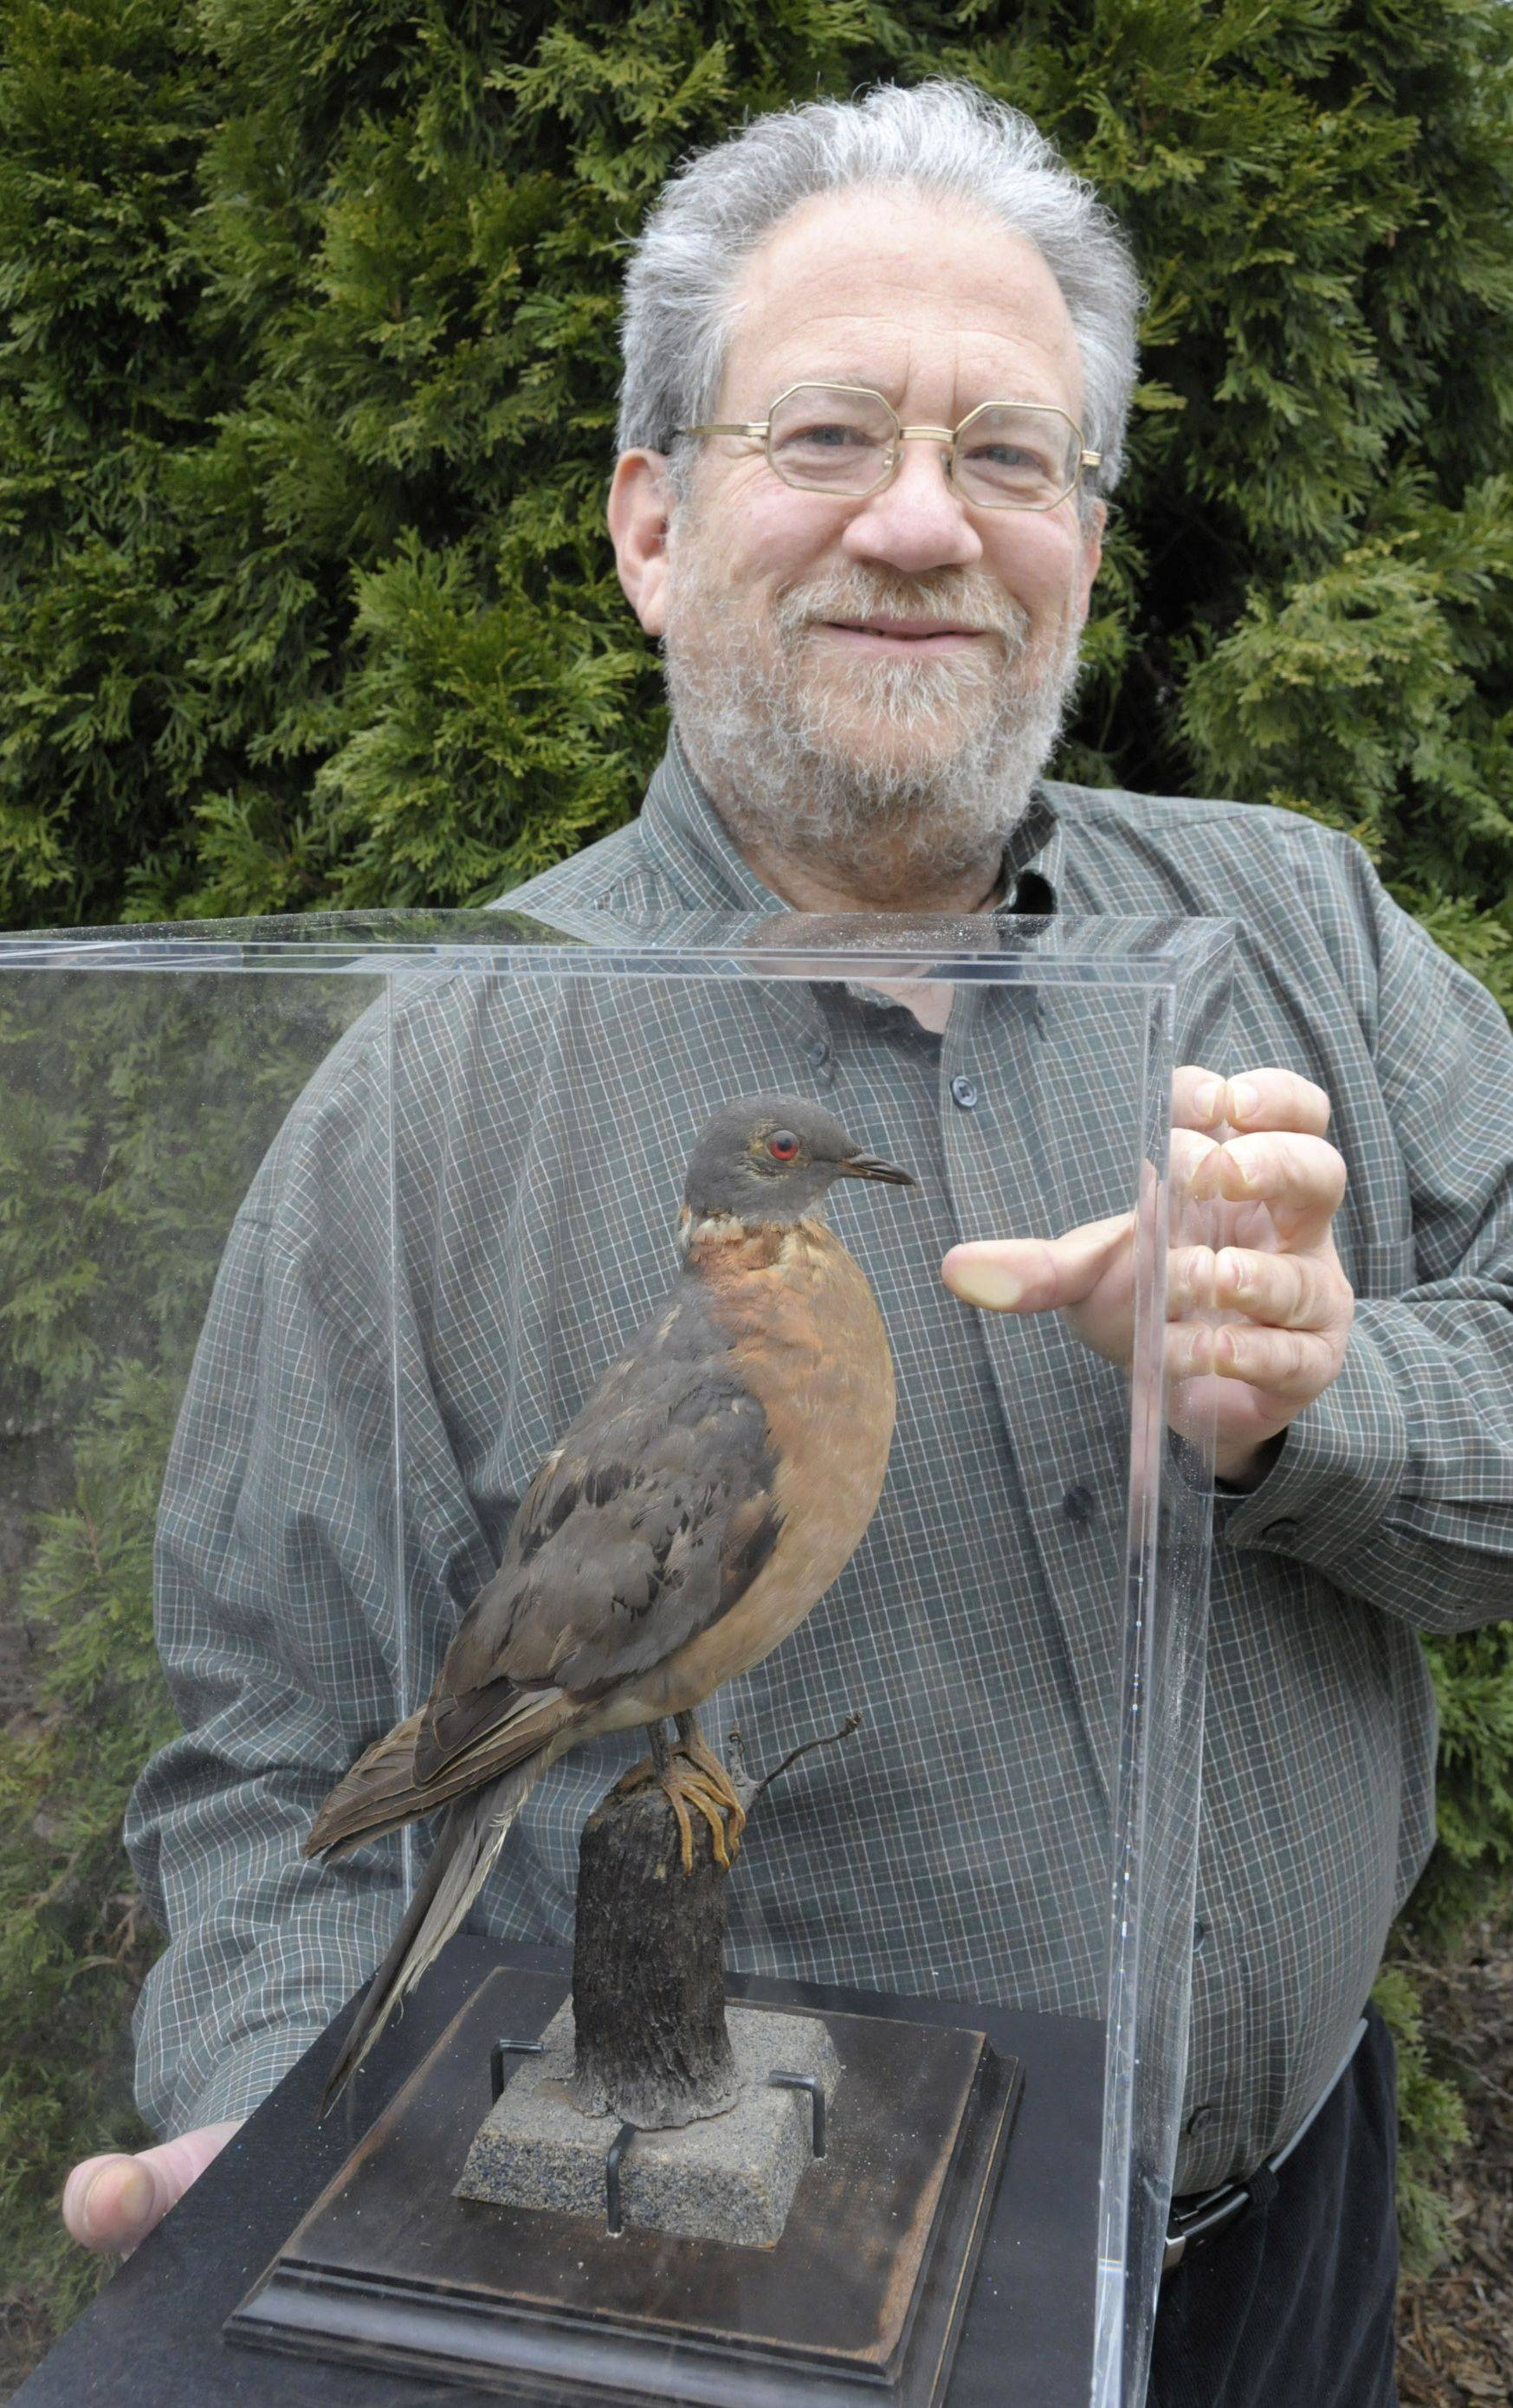 Joel Greenberg displays Heinrich, a stuffed passenger pigeon. The Westmont author is one of the lead organizers of Project Passenger Pigeon, a national educational effort involving the long extinct bird.